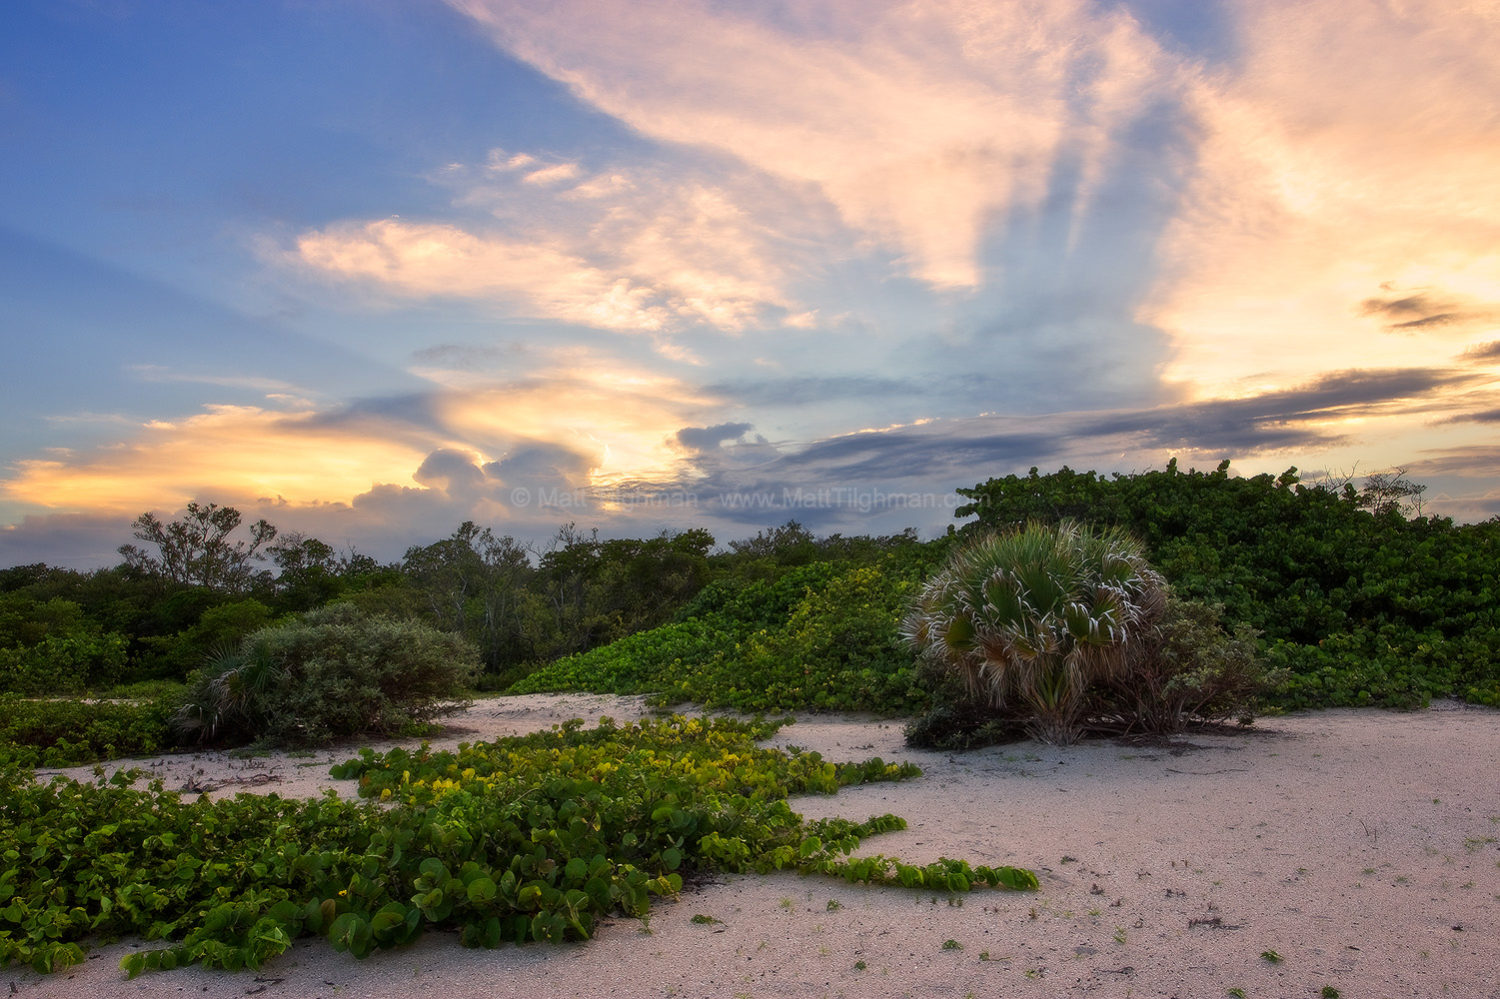 Fine art stock photograph from Mizell-Johnson State Park, in South Florida. Typical native dune vegetation frames a beautiful stormy sunset.